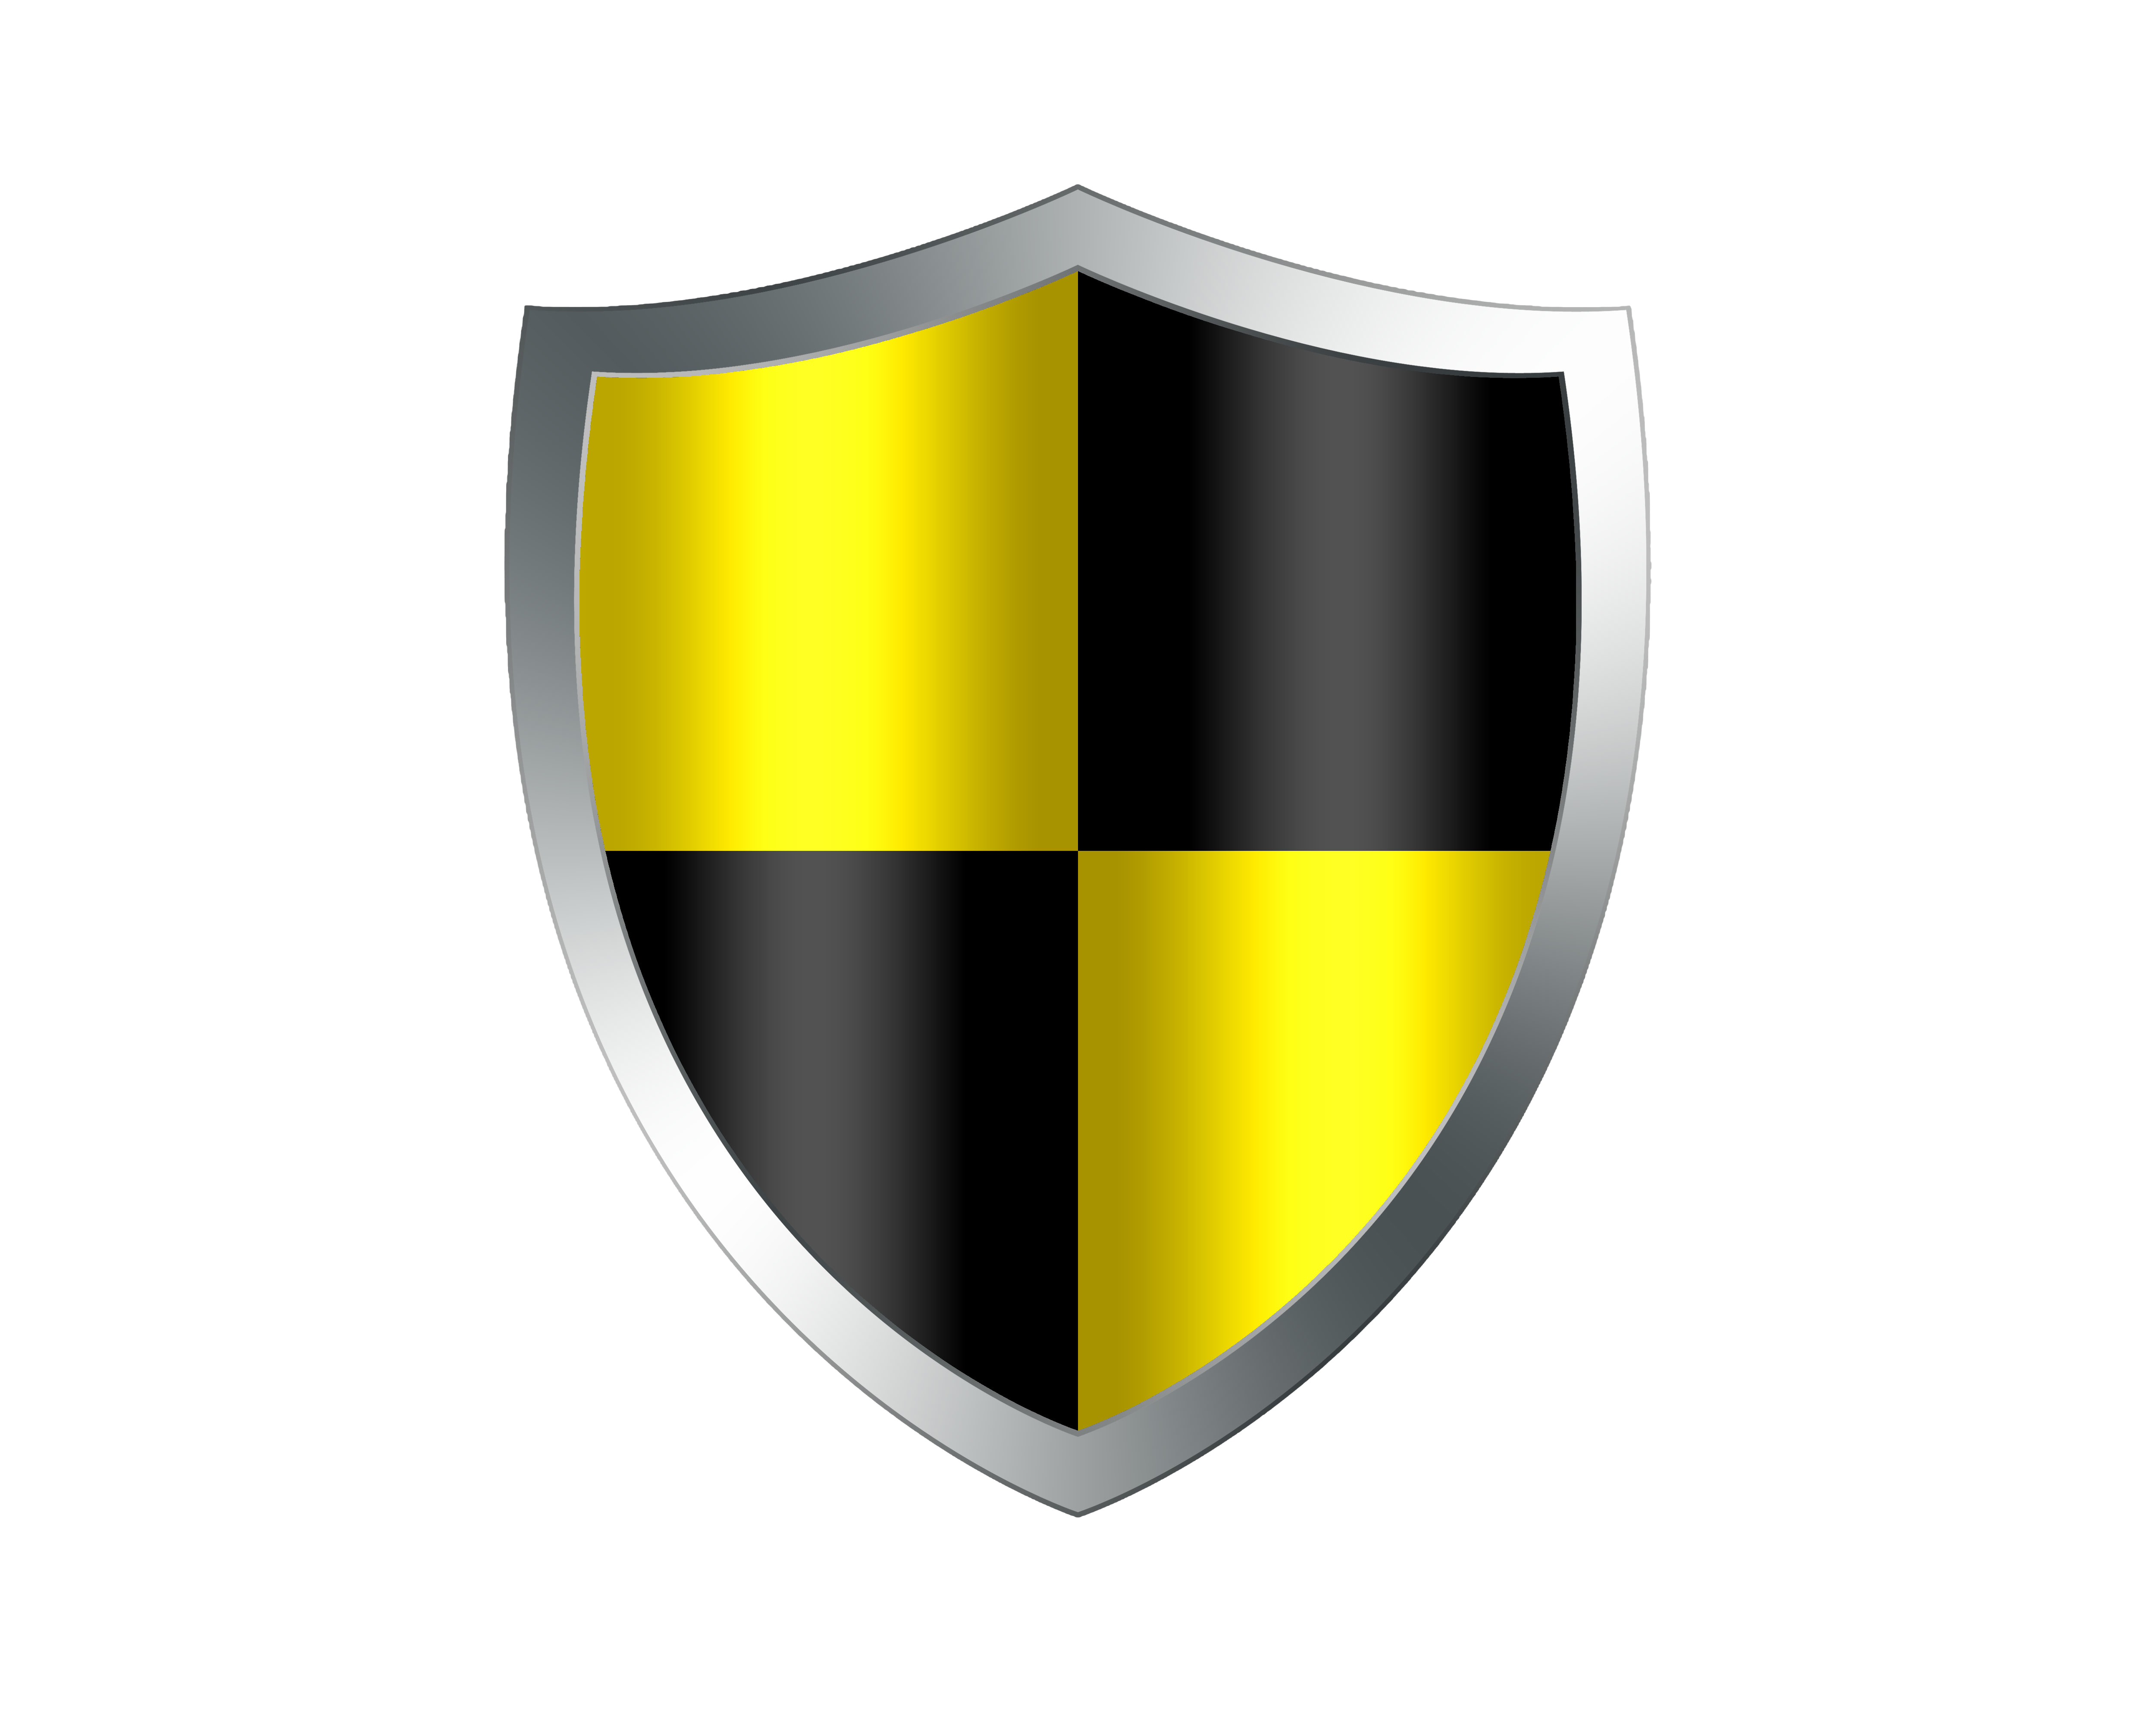 Silver png image purepng. Clipart shield security shield